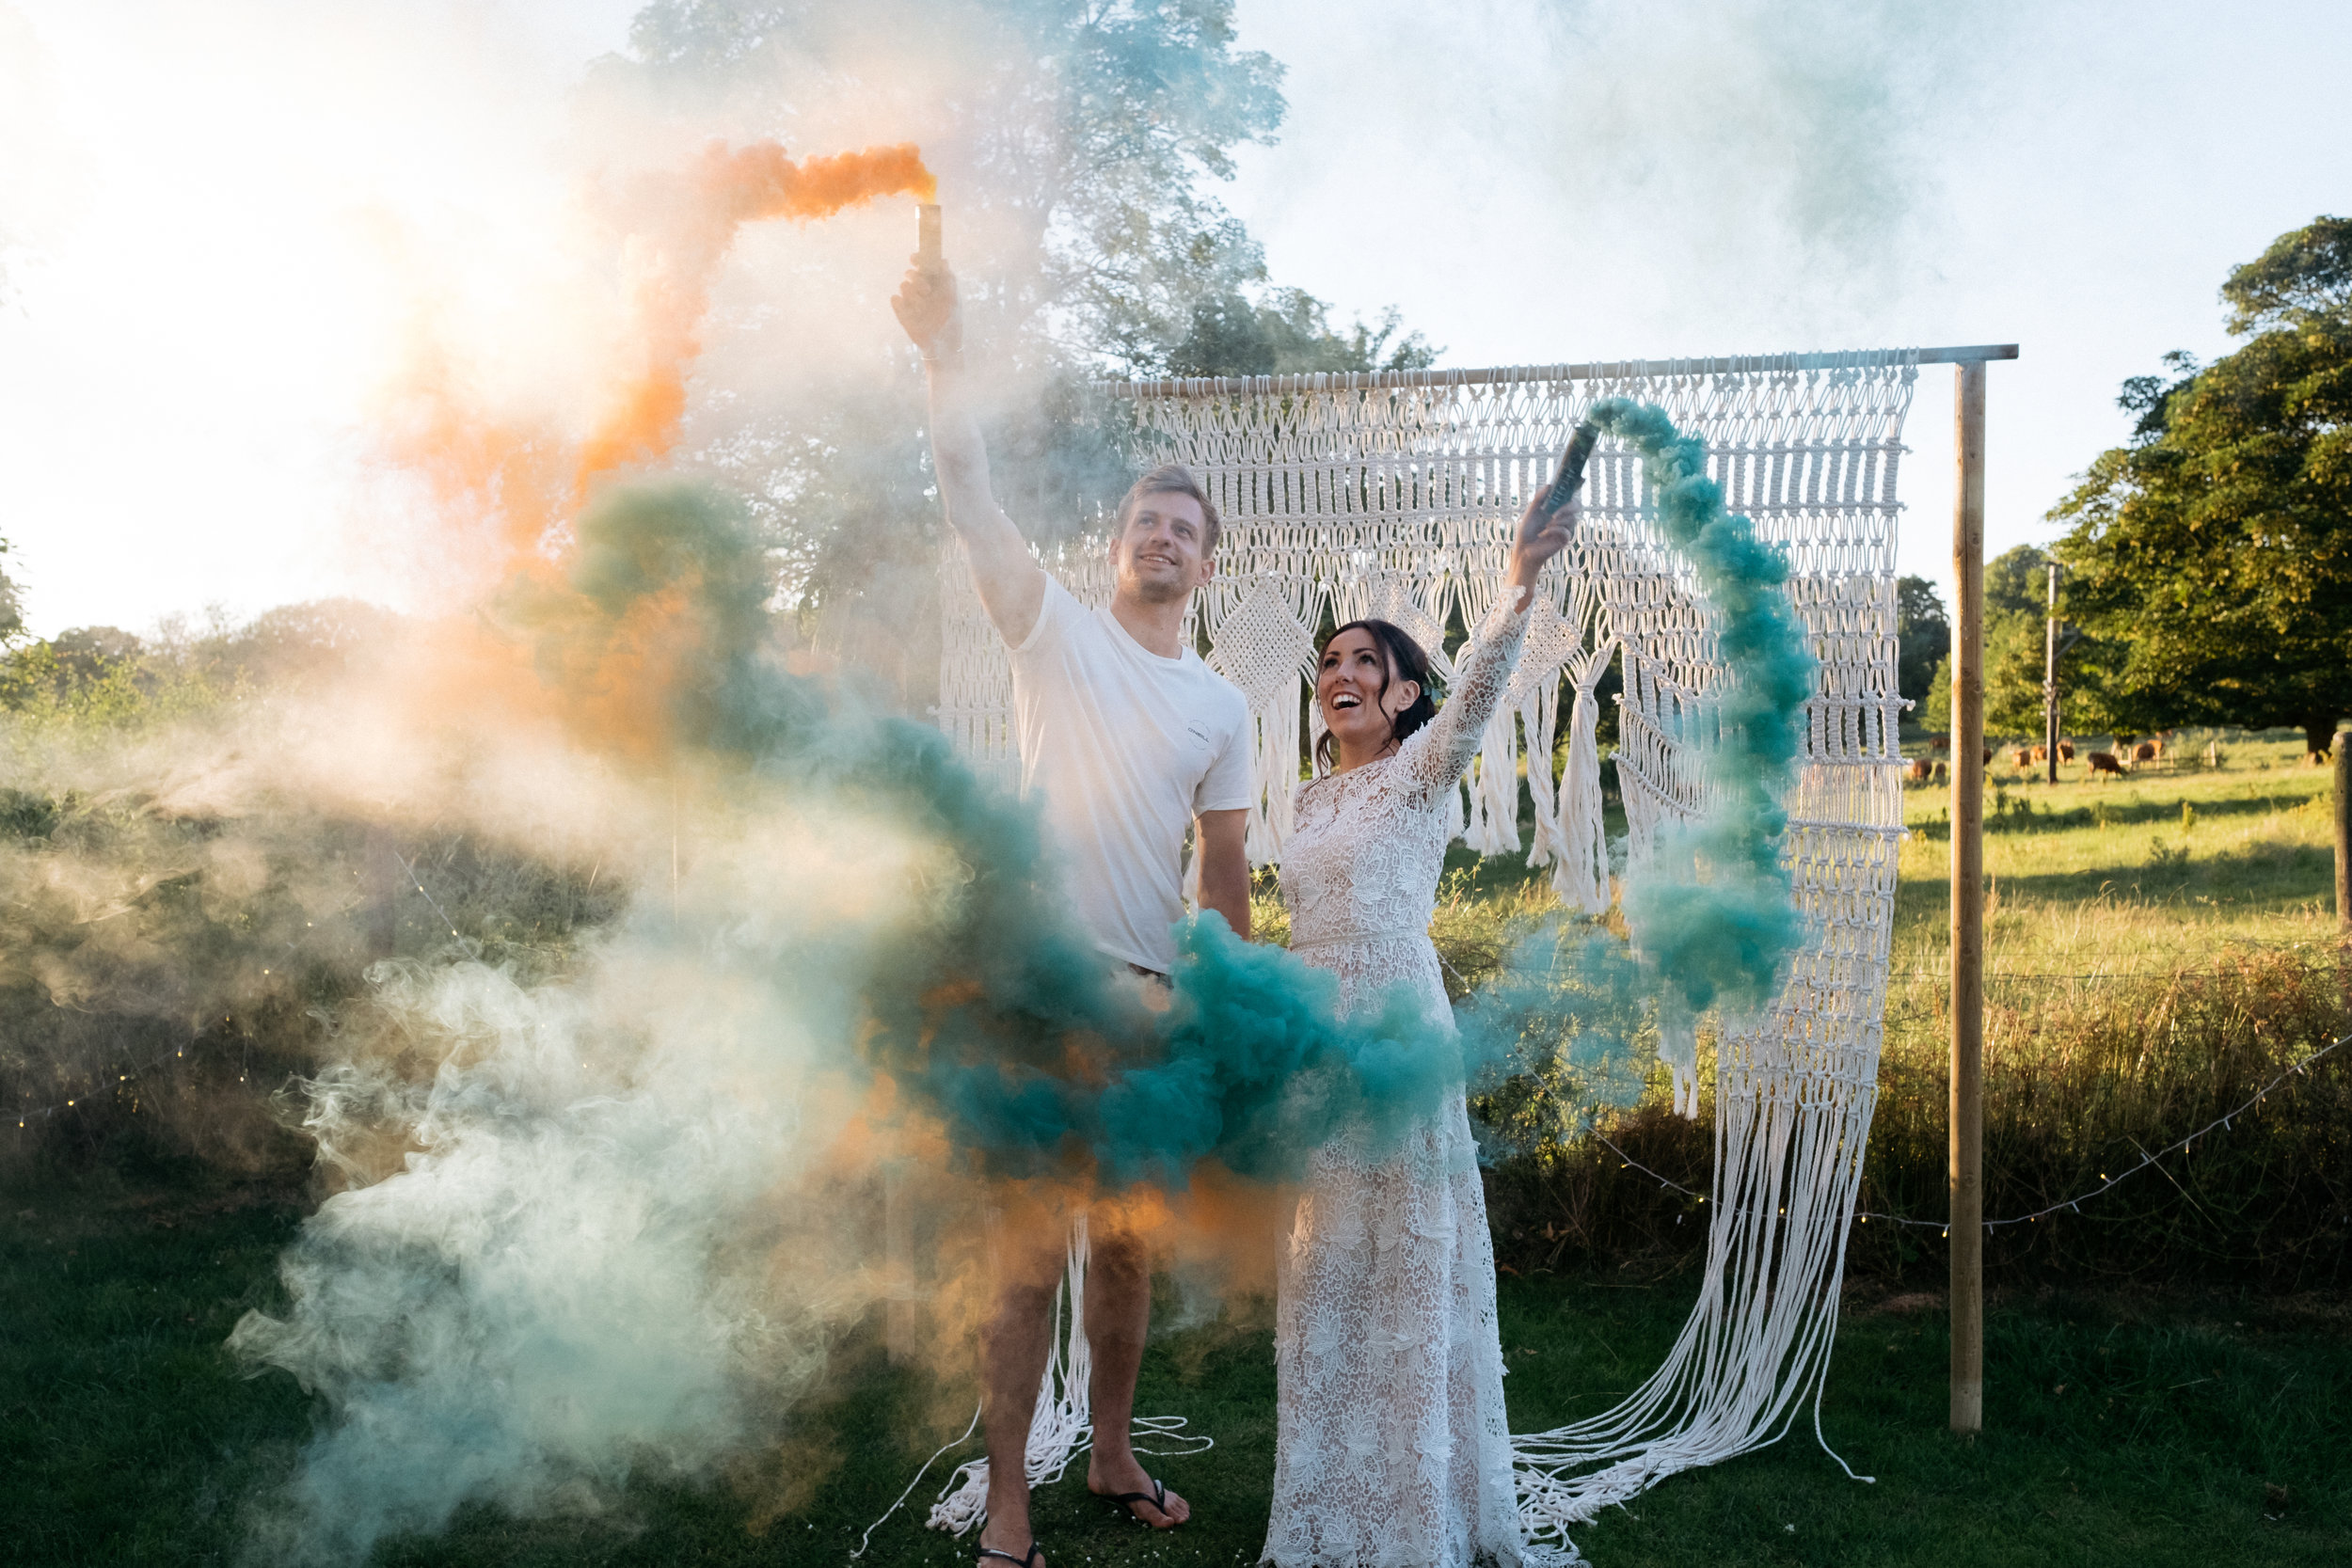 Bride and groom drawing heart with smoke grenades on wedding day